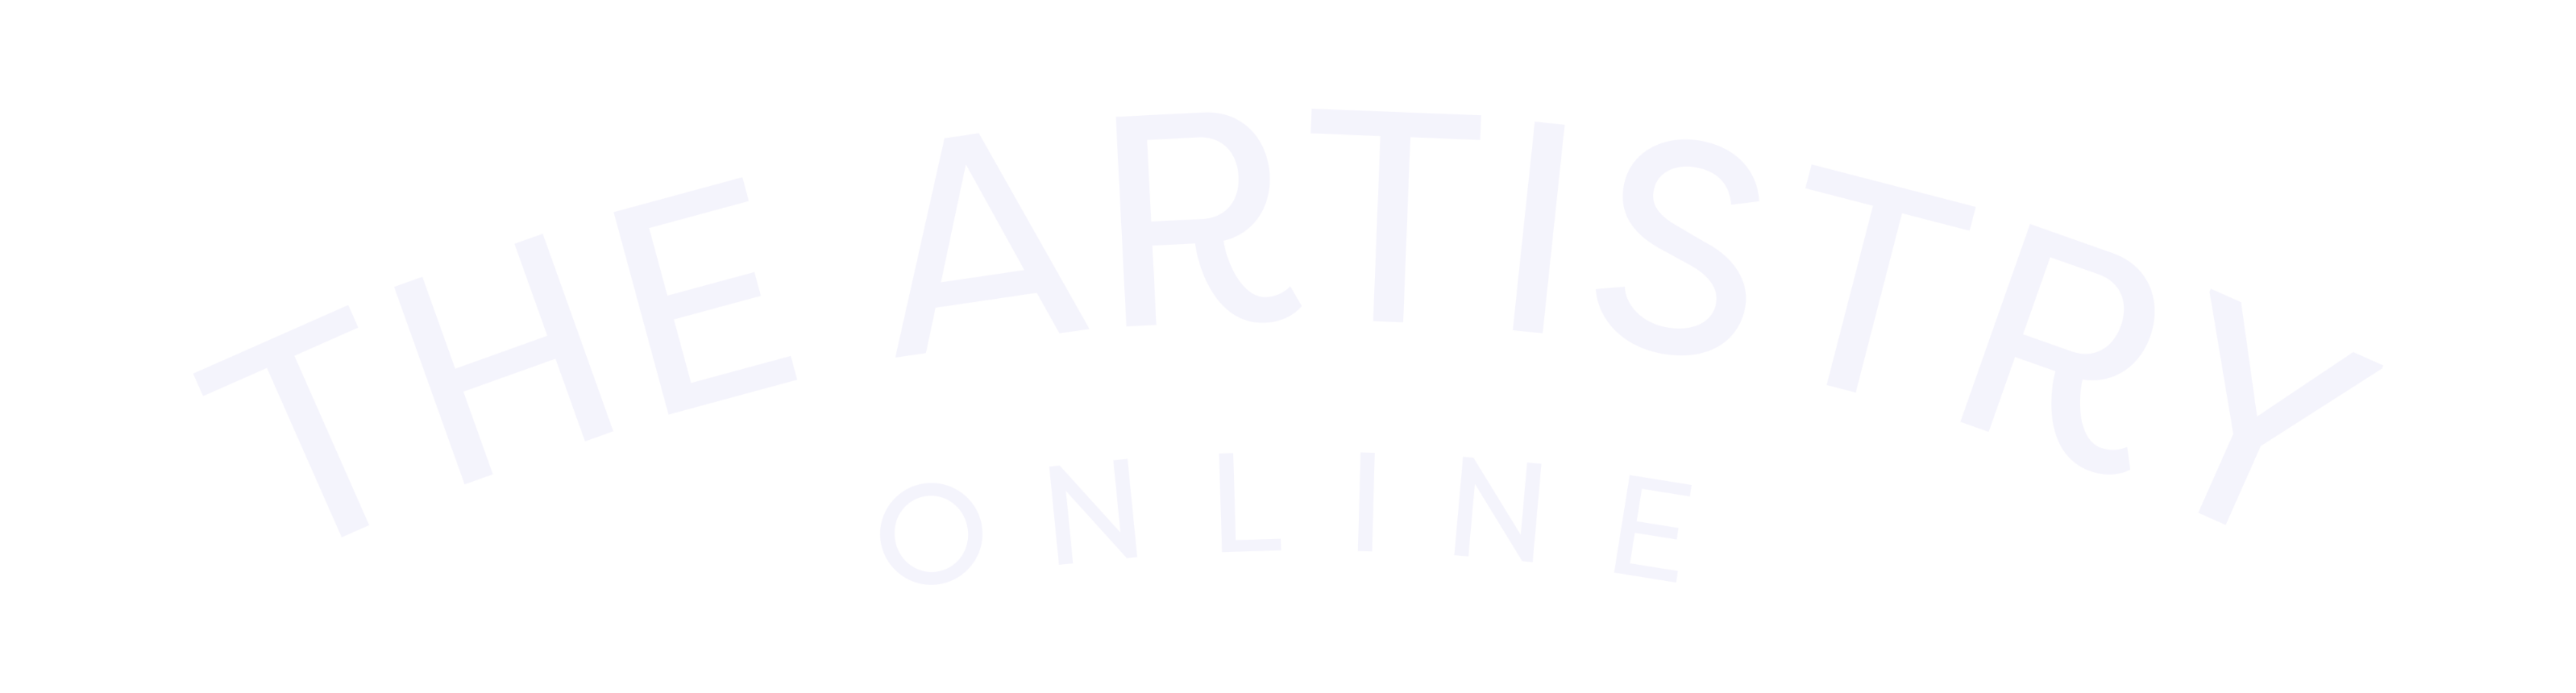 The Artistry Online - Branding, Web Design, Online Marketing